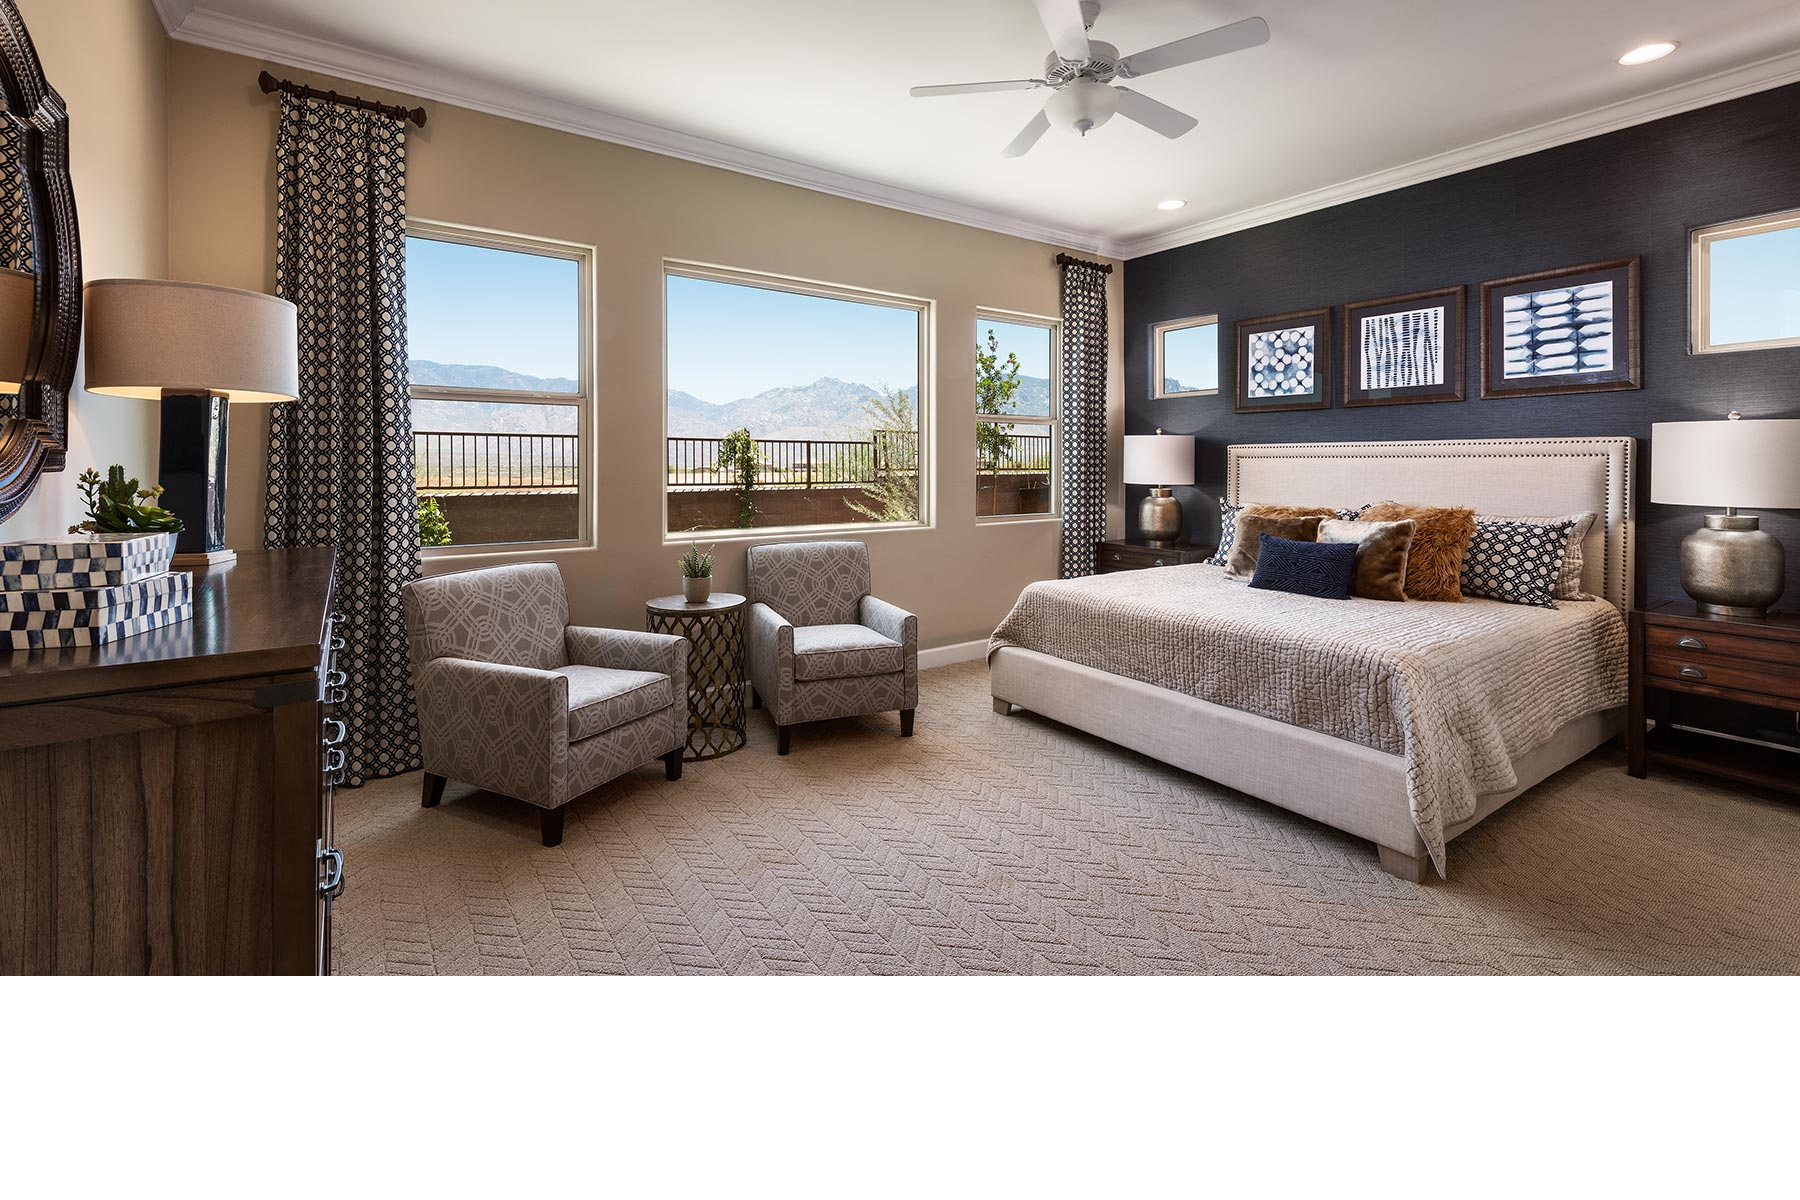 Alterra at Vistoso Trails Bedroom in Oro Valley Arizona by Mattamy Homes